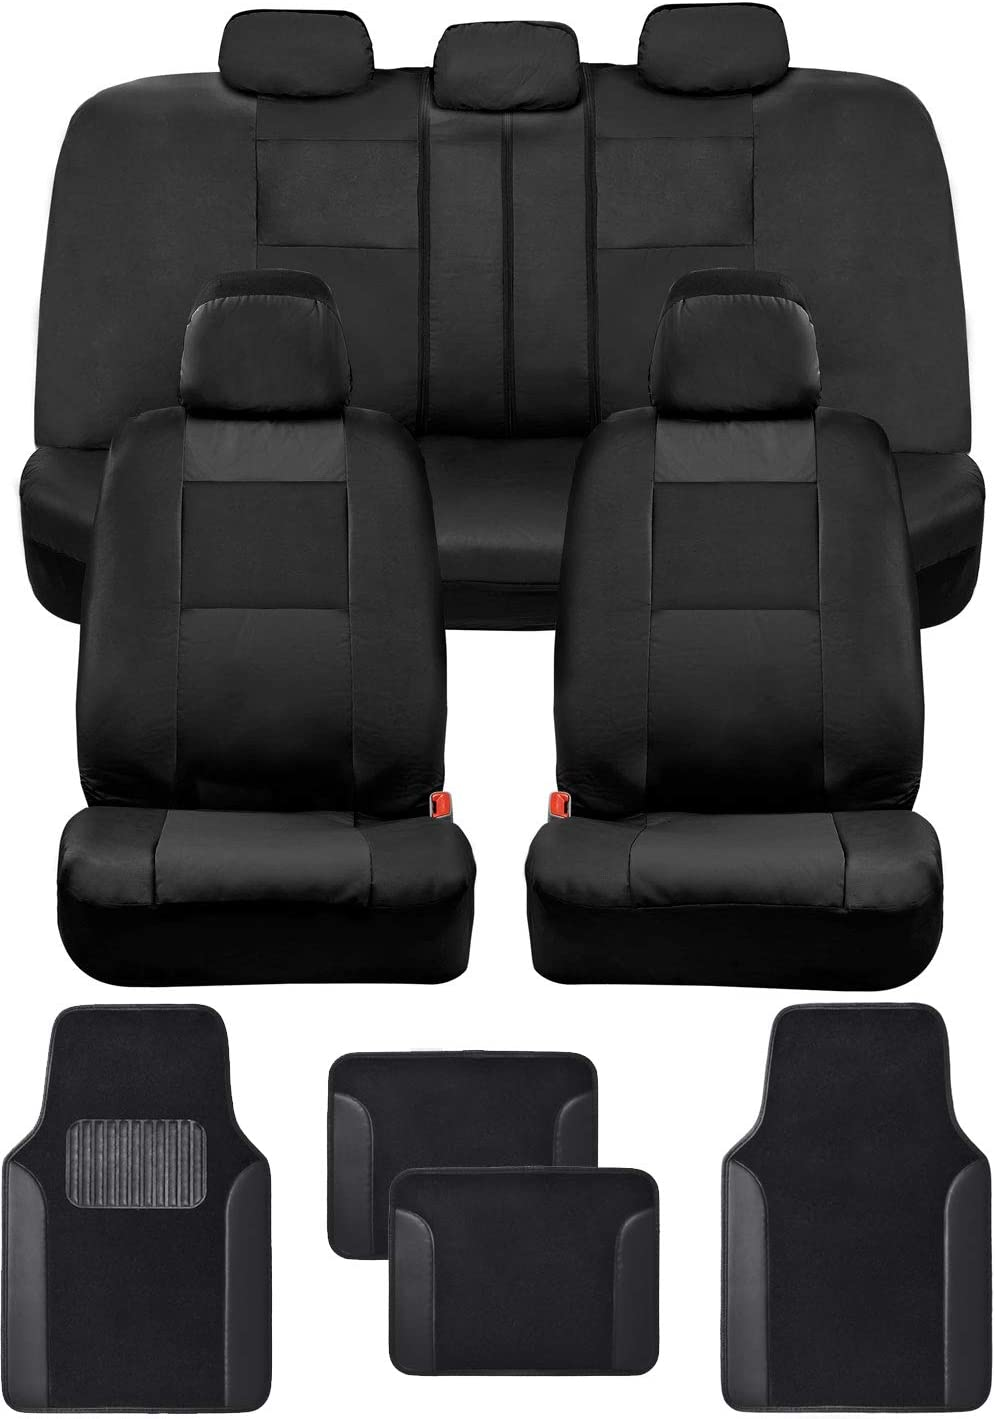 BDK Croc Skin Ranking TOP5 Faux Leather Car Covers Carpet Max 74% OFF Seat Full Set with